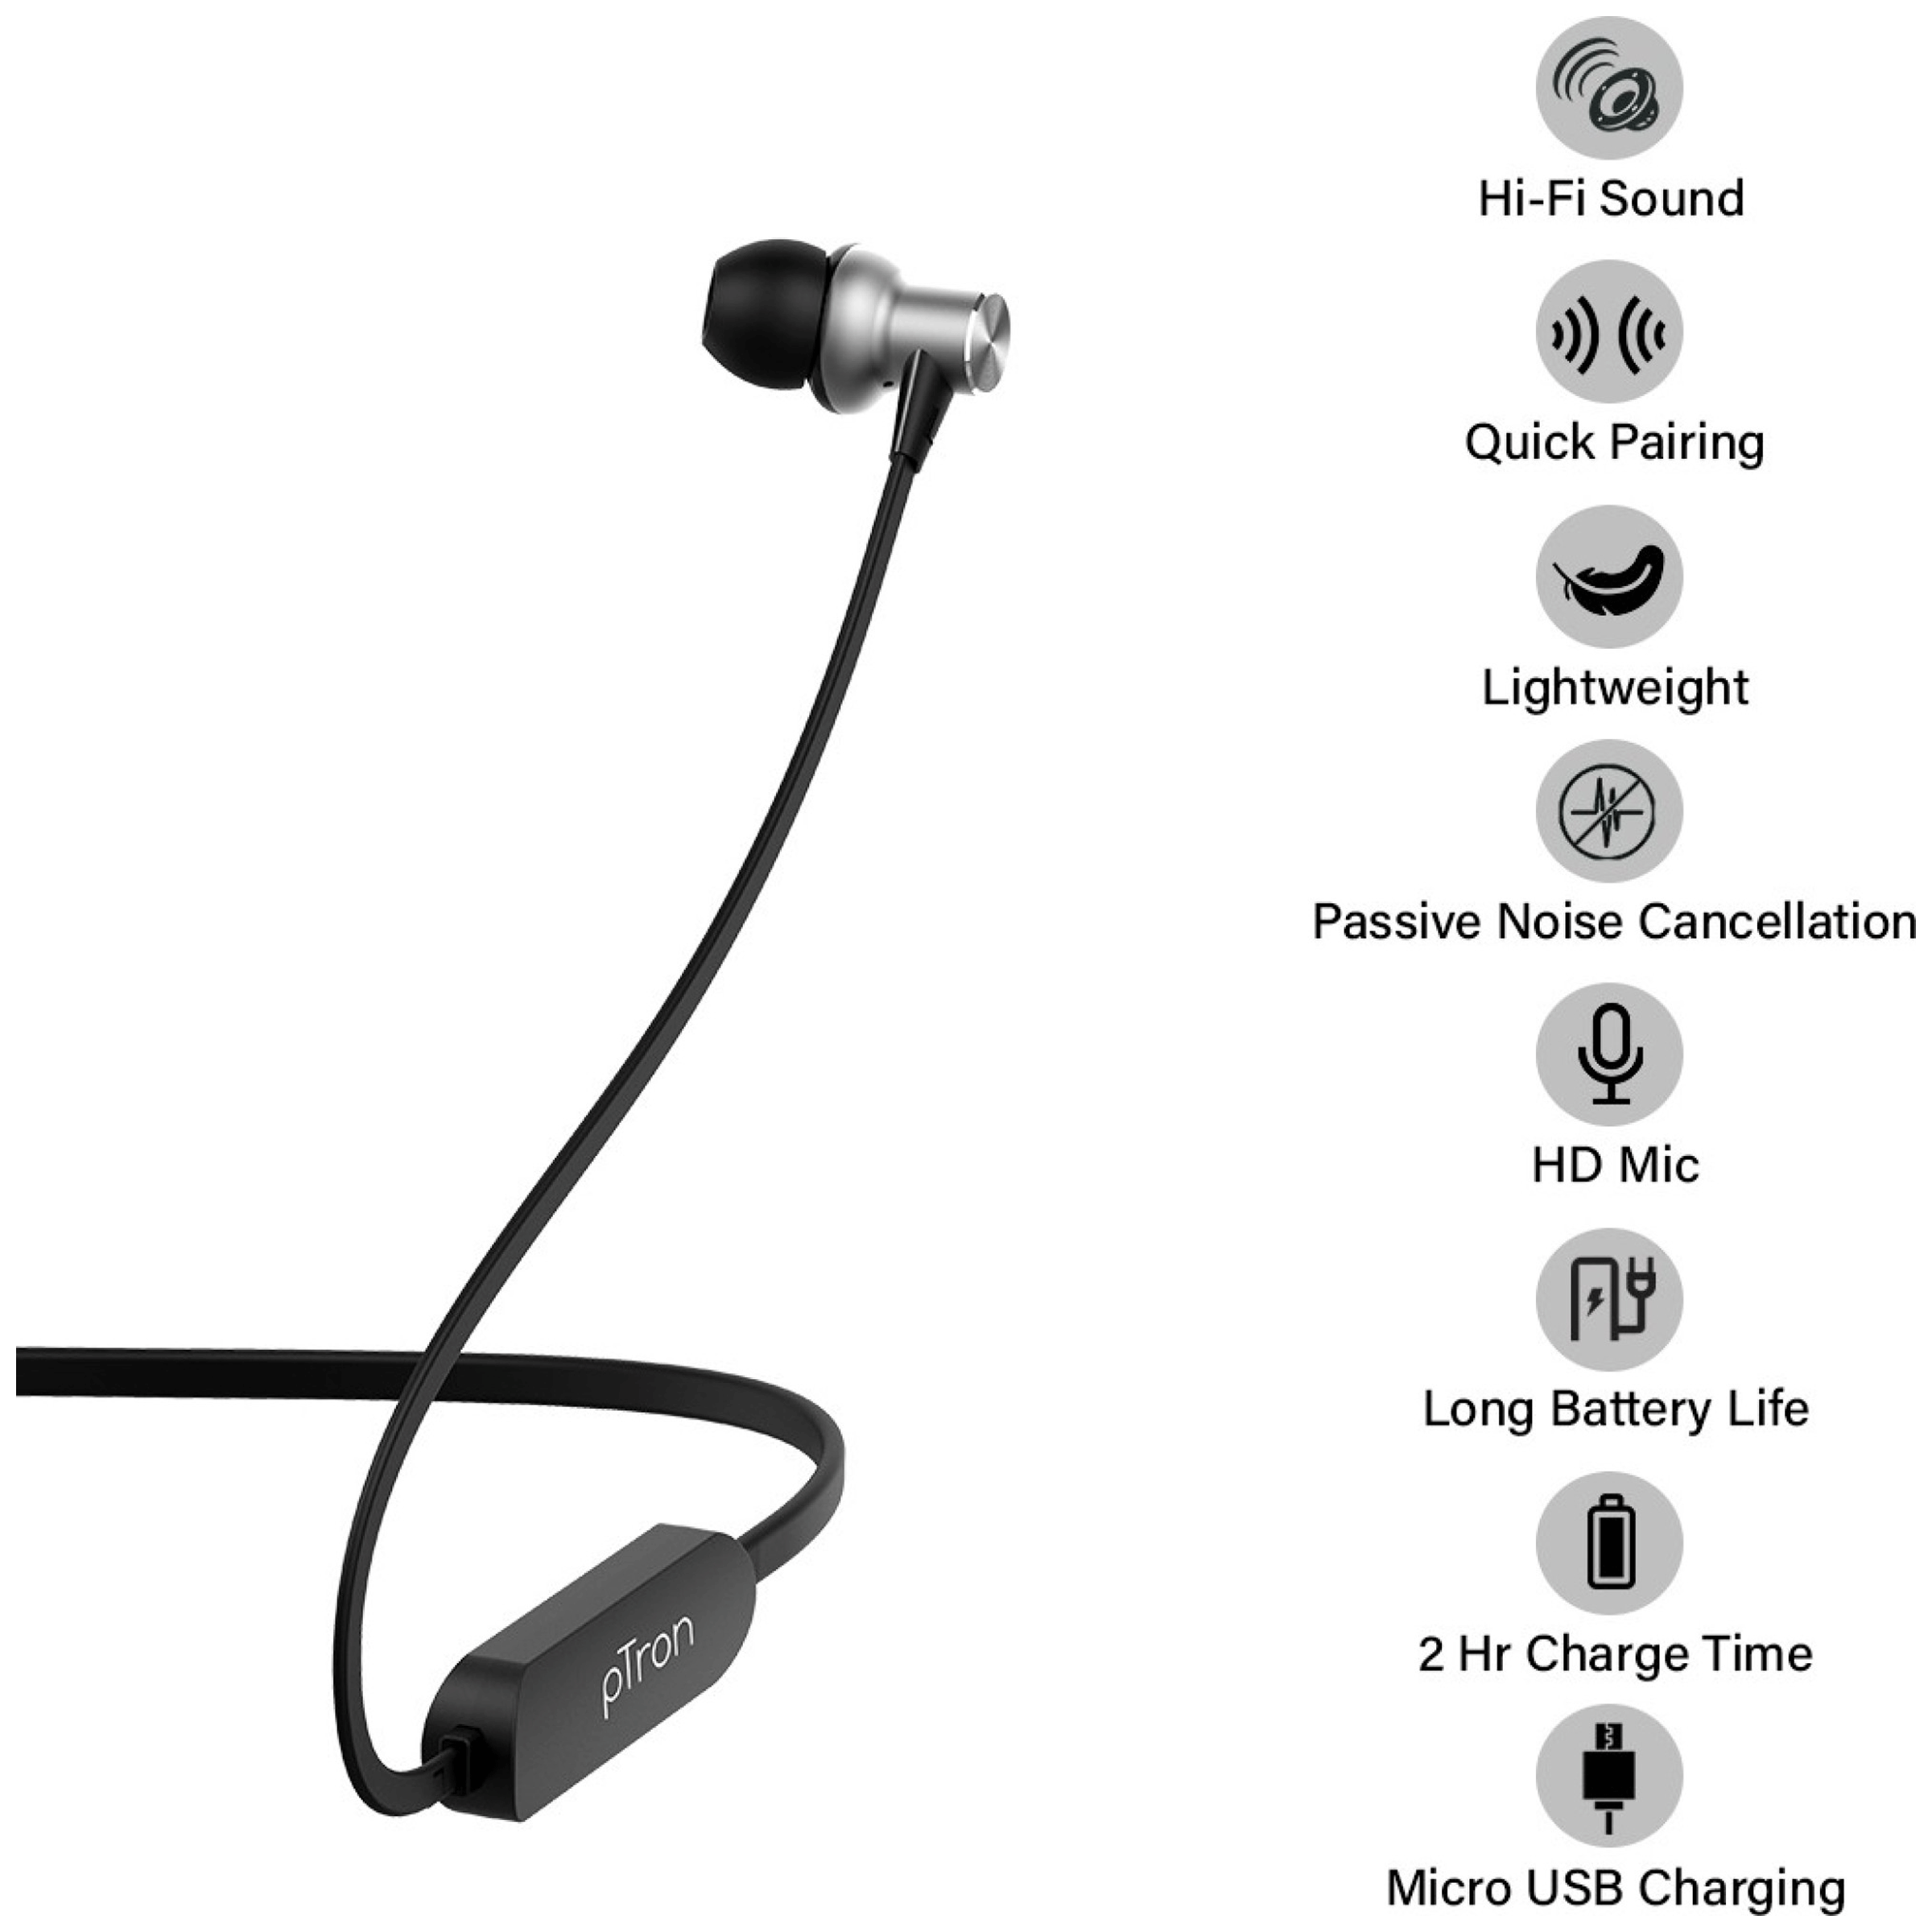 pTron Avento Classic In-Ear Passive Noise Cancellation Wireless Earphone with Mic (Bluetooth 5.0, Magnetic Locking, 140317896, Black/Grey)_2